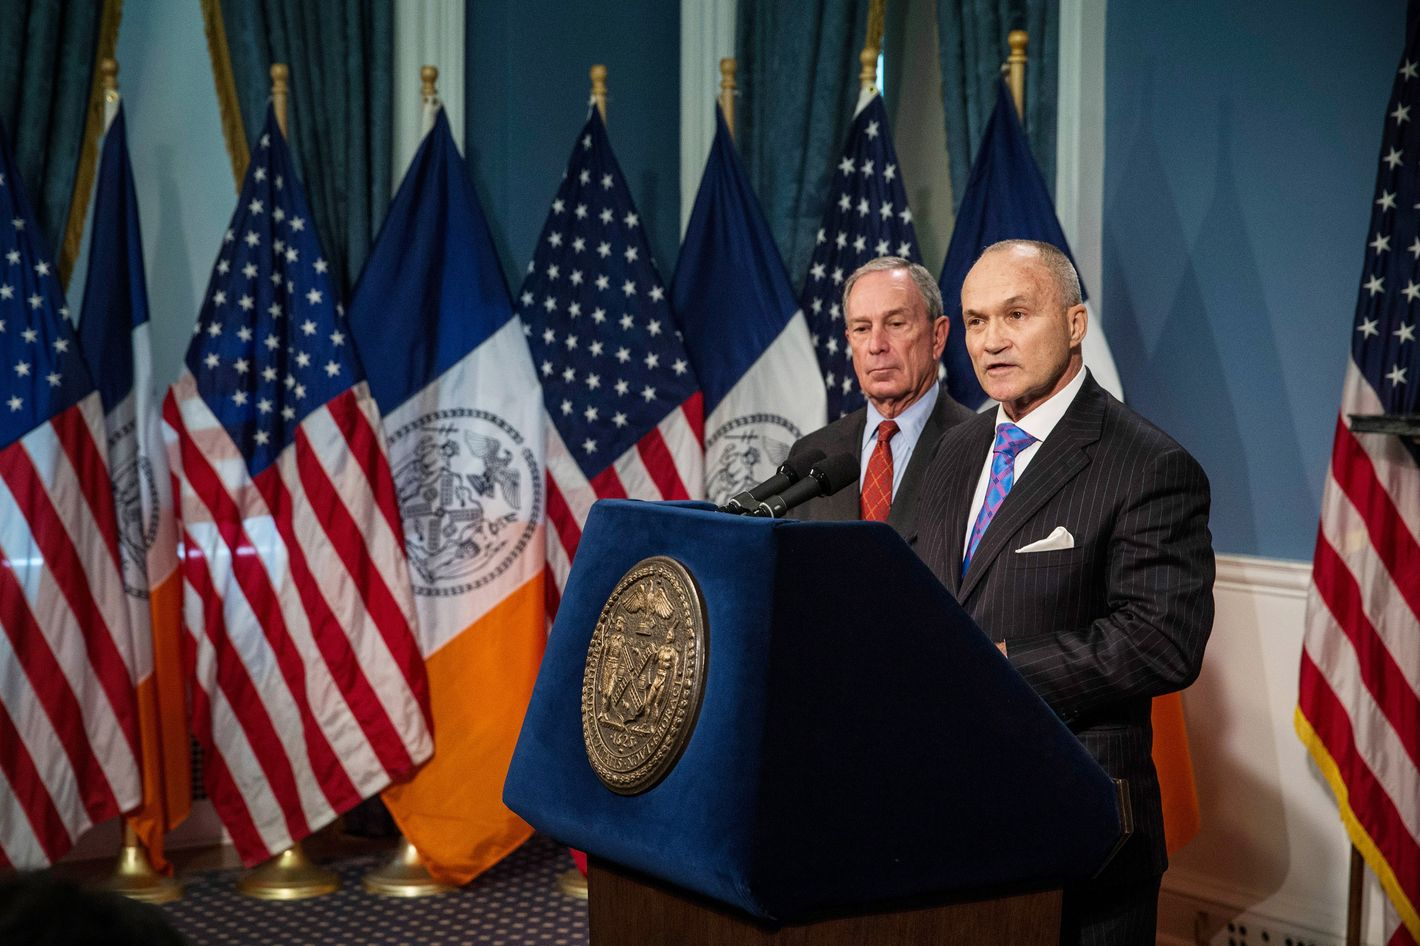 New York Police Department (NYPD) Commissioner Ray Kelly (R) speaks at a press conference with New York City Mayor Michael Bloomberg about the NYPD's Stop-and-Frisk practice on August 12, 2013 in New York City. A federal court judge ruled that Stop-and-Frisk violates rights guaranteed to people and the Bloomberg administration has vowed to appeal the case.